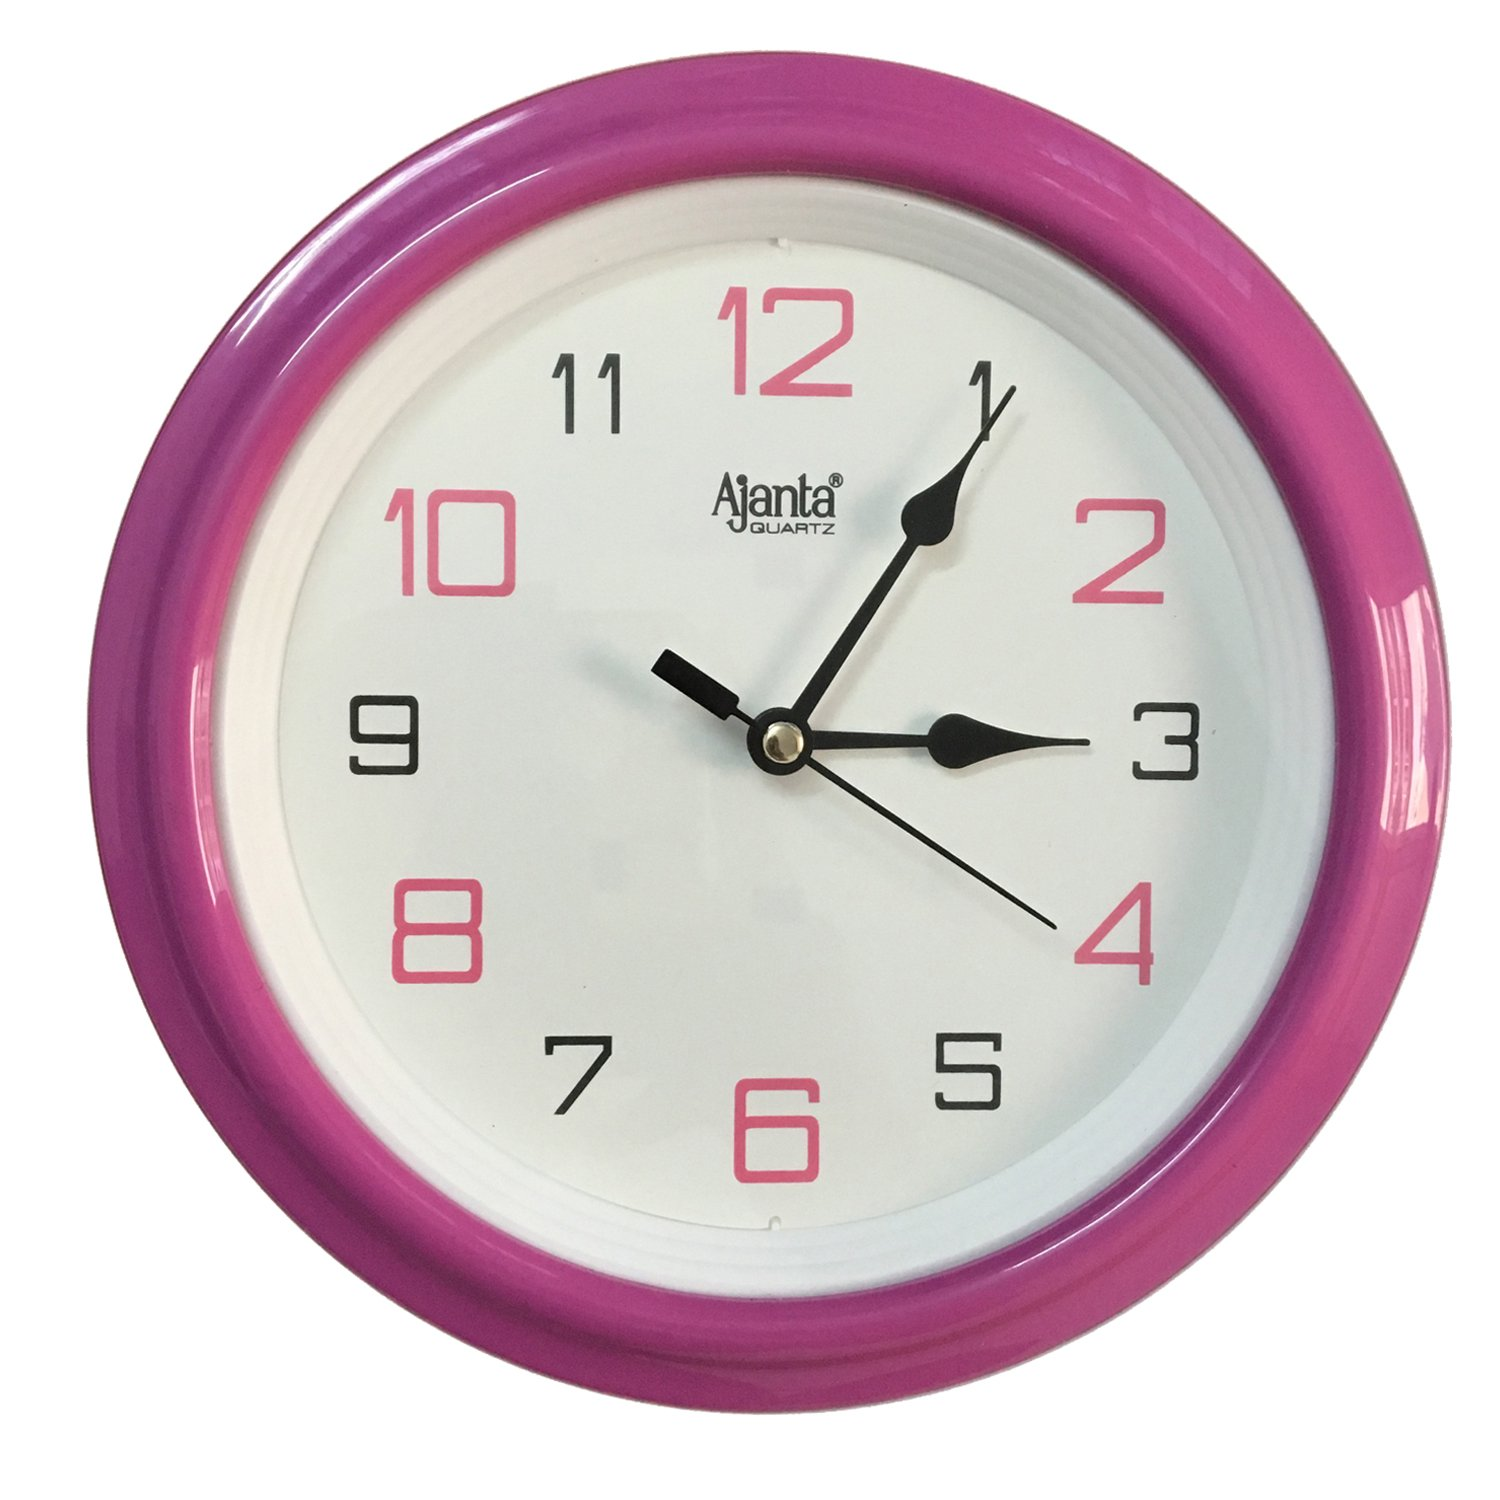 Buy ajanta pink wall clock pink online at low prices in india buy ajanta pink wall clock pink online at low prices in india amazon amipublicfo Image collections